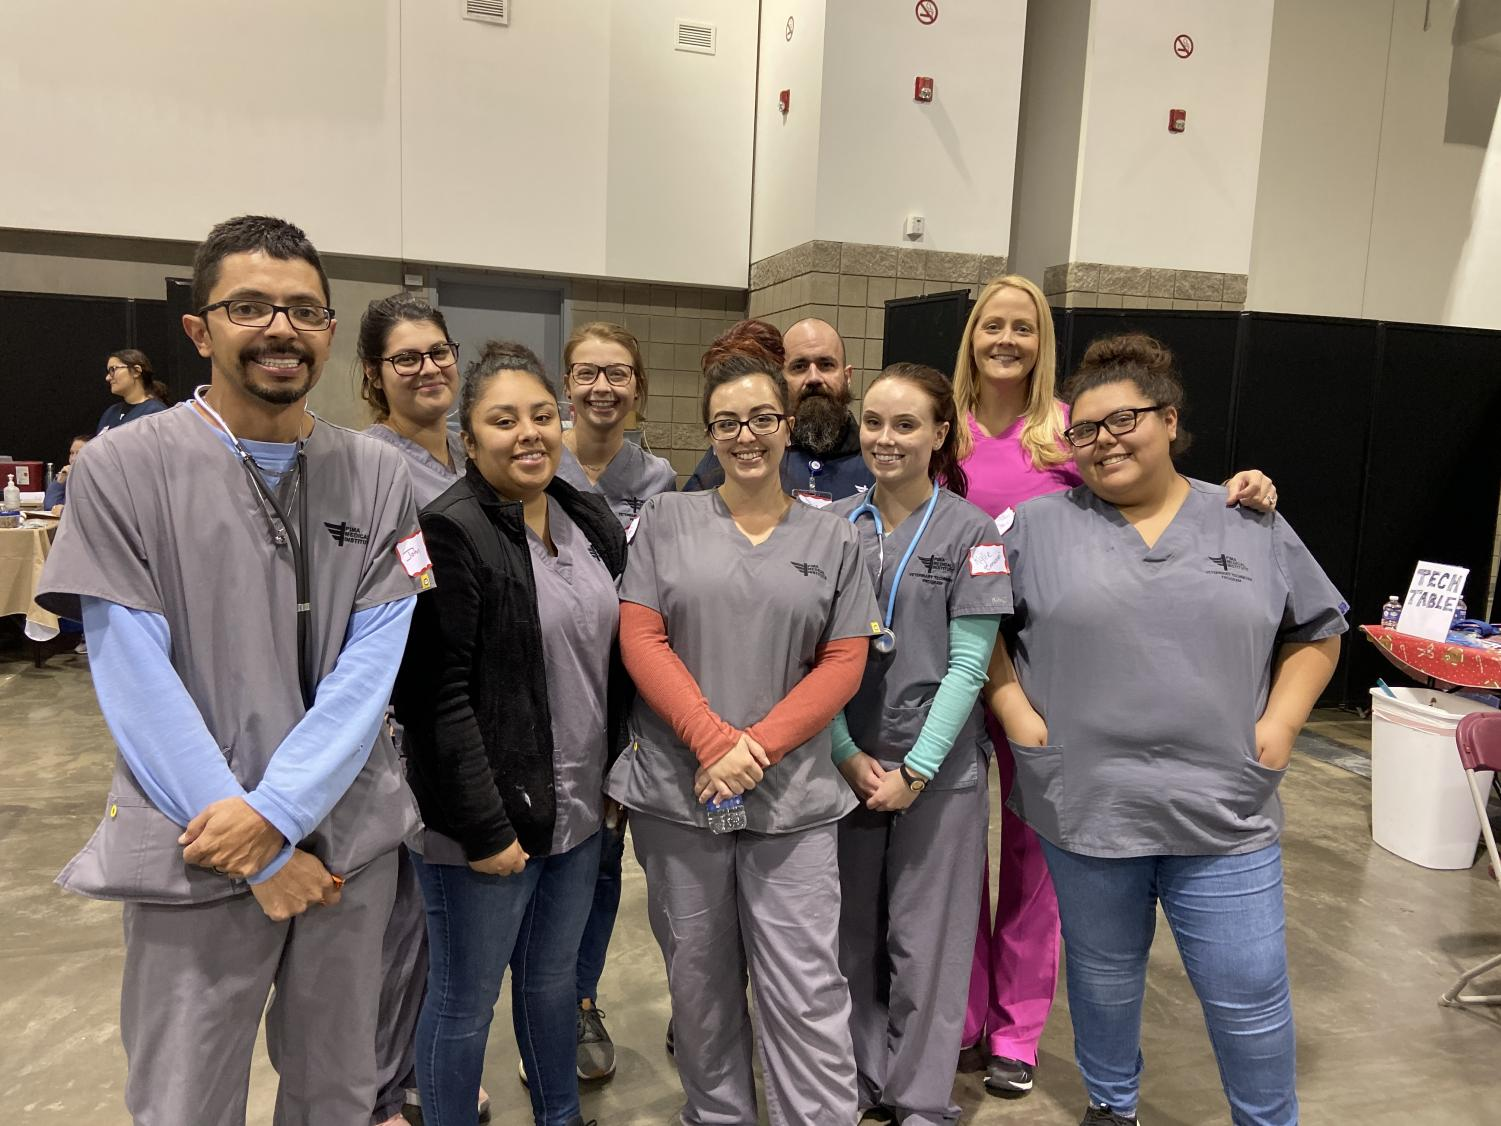 Pima Medical Institute Students at the Project Homeless Connect event located in the Colorado Convention Center in Denver, Colo. on Oct. 10, 2019.